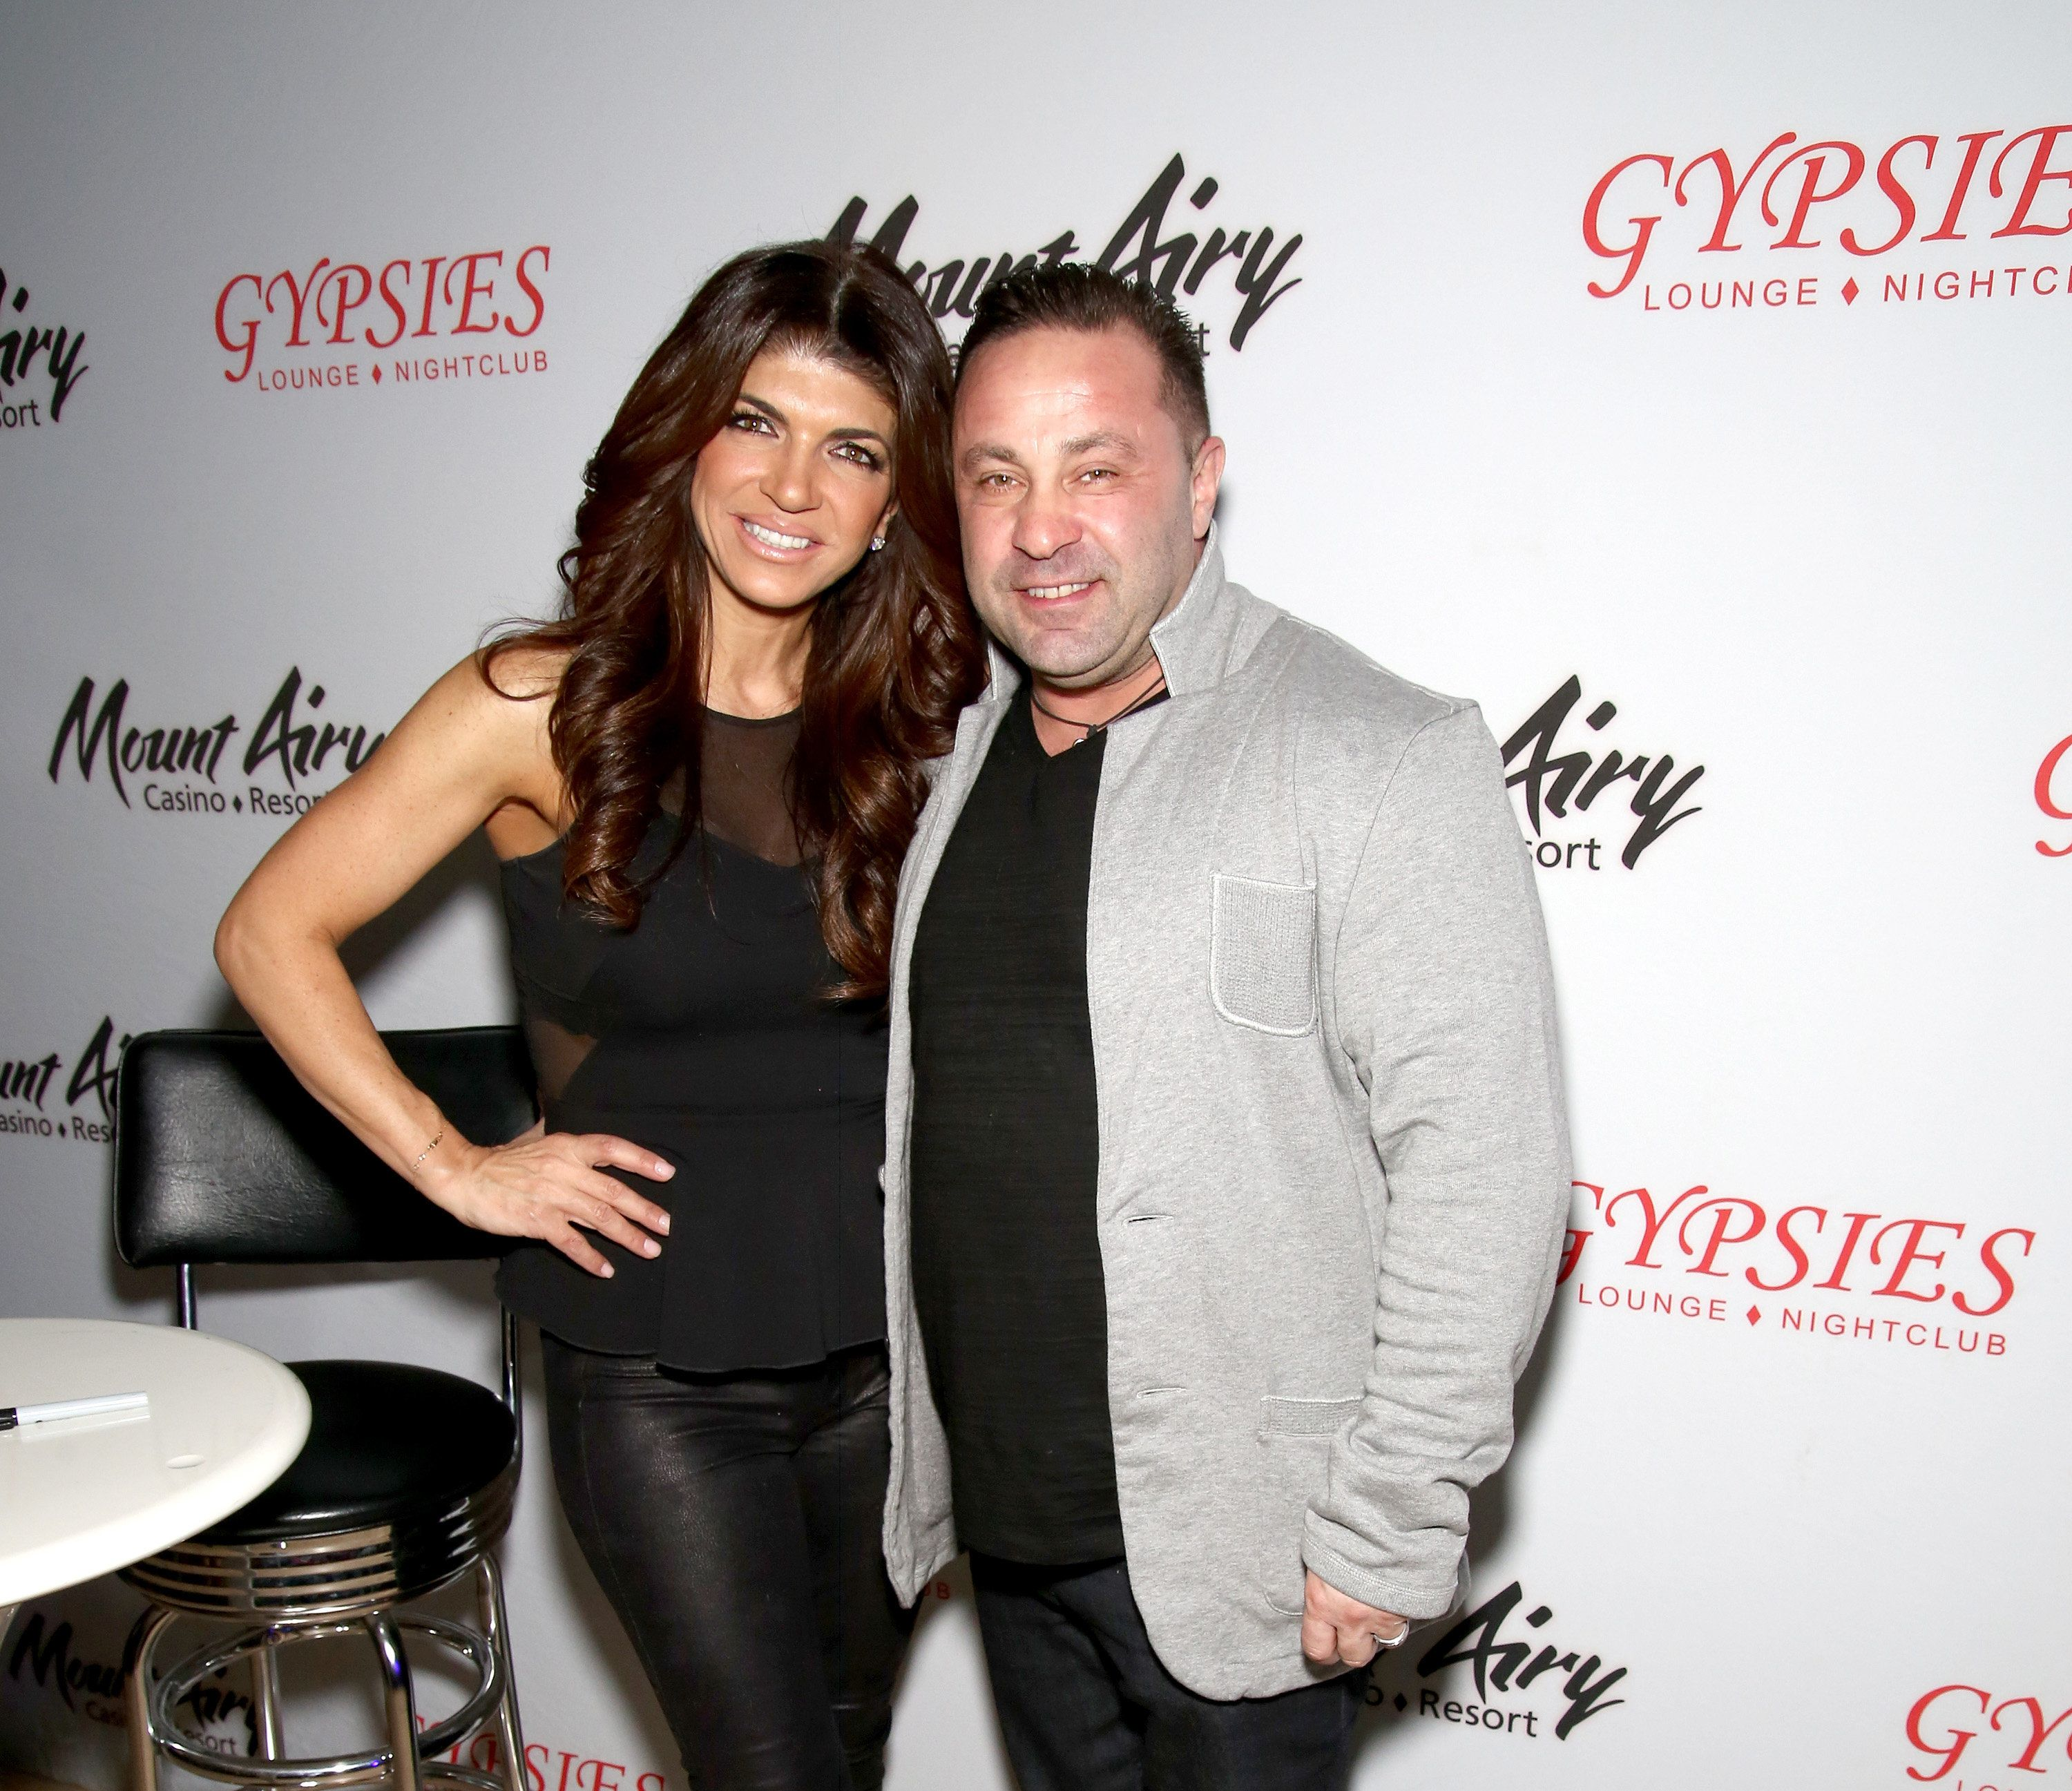 Joe Giudice To Be Deported To Italy After Completing Jail Time